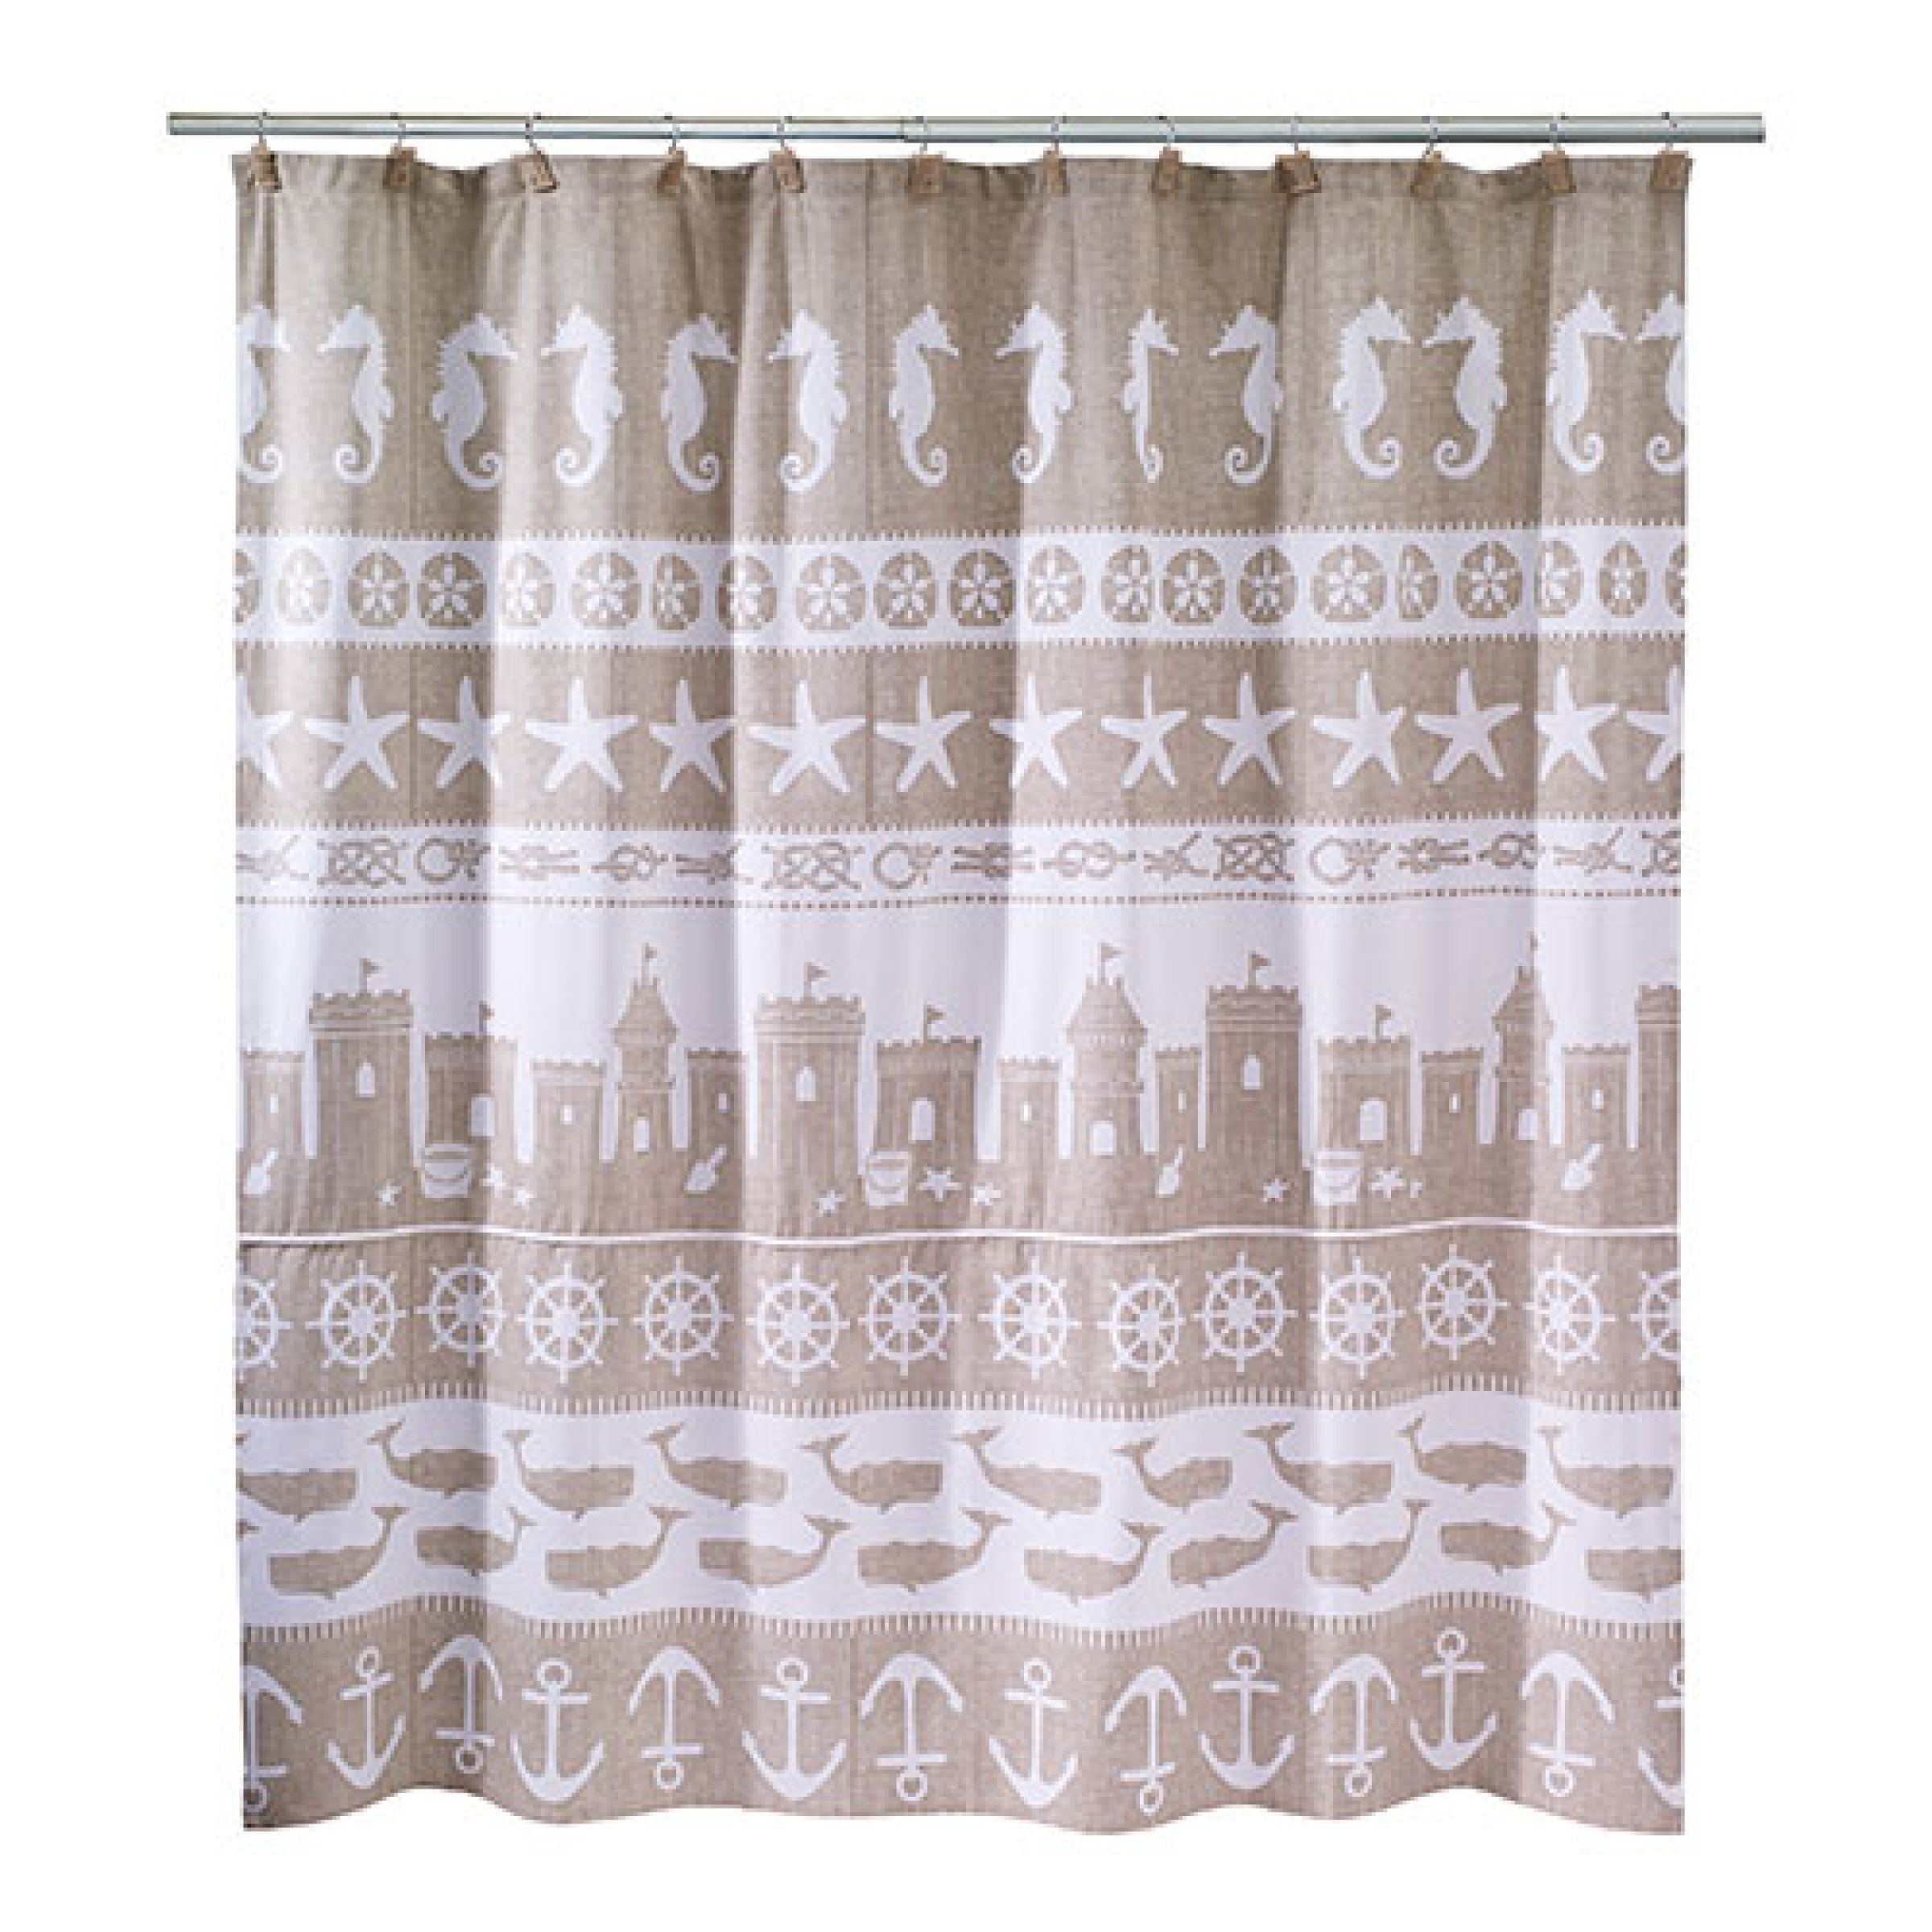 Boscov's Shower Curtains Avanti Sea And Sand Shower Curtain Hooks Boscov S Home